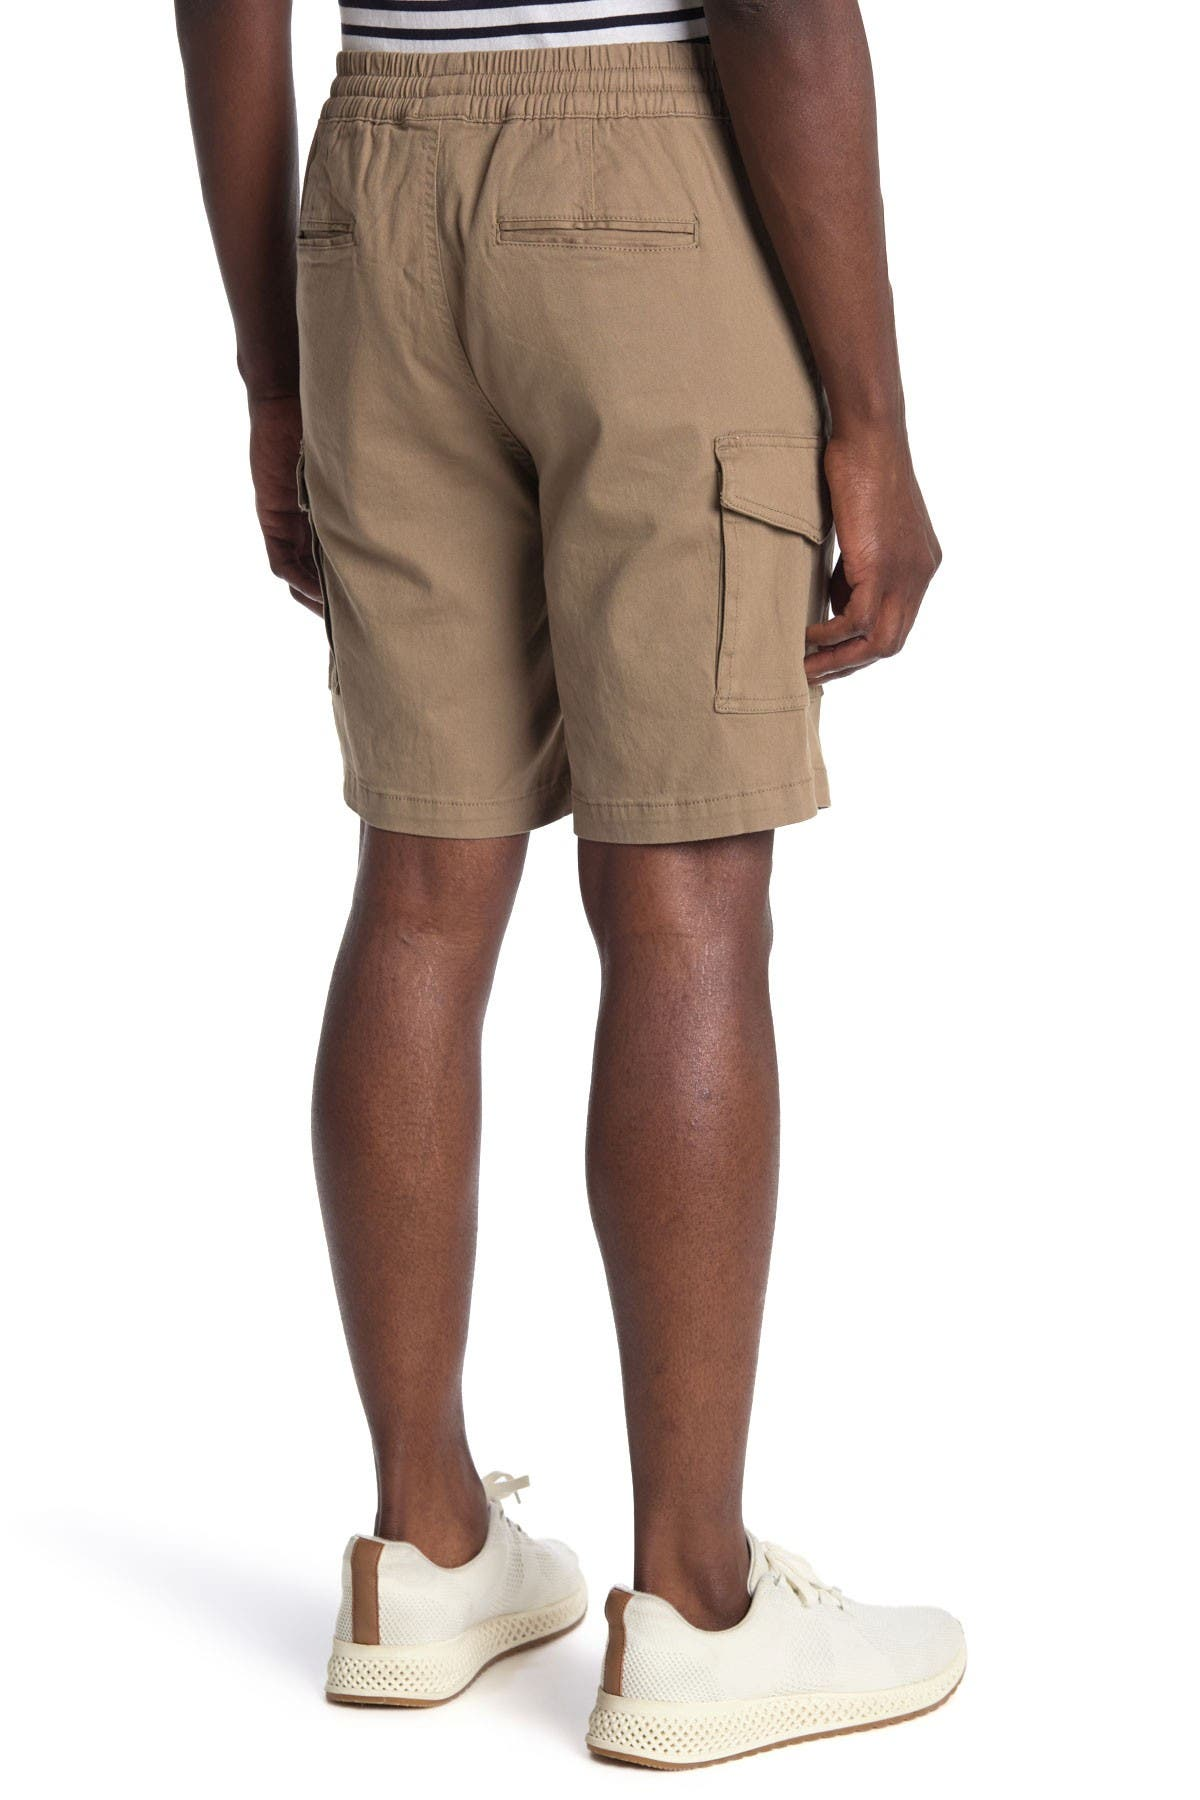 Image of HEDGE Woven Cargo Shorts